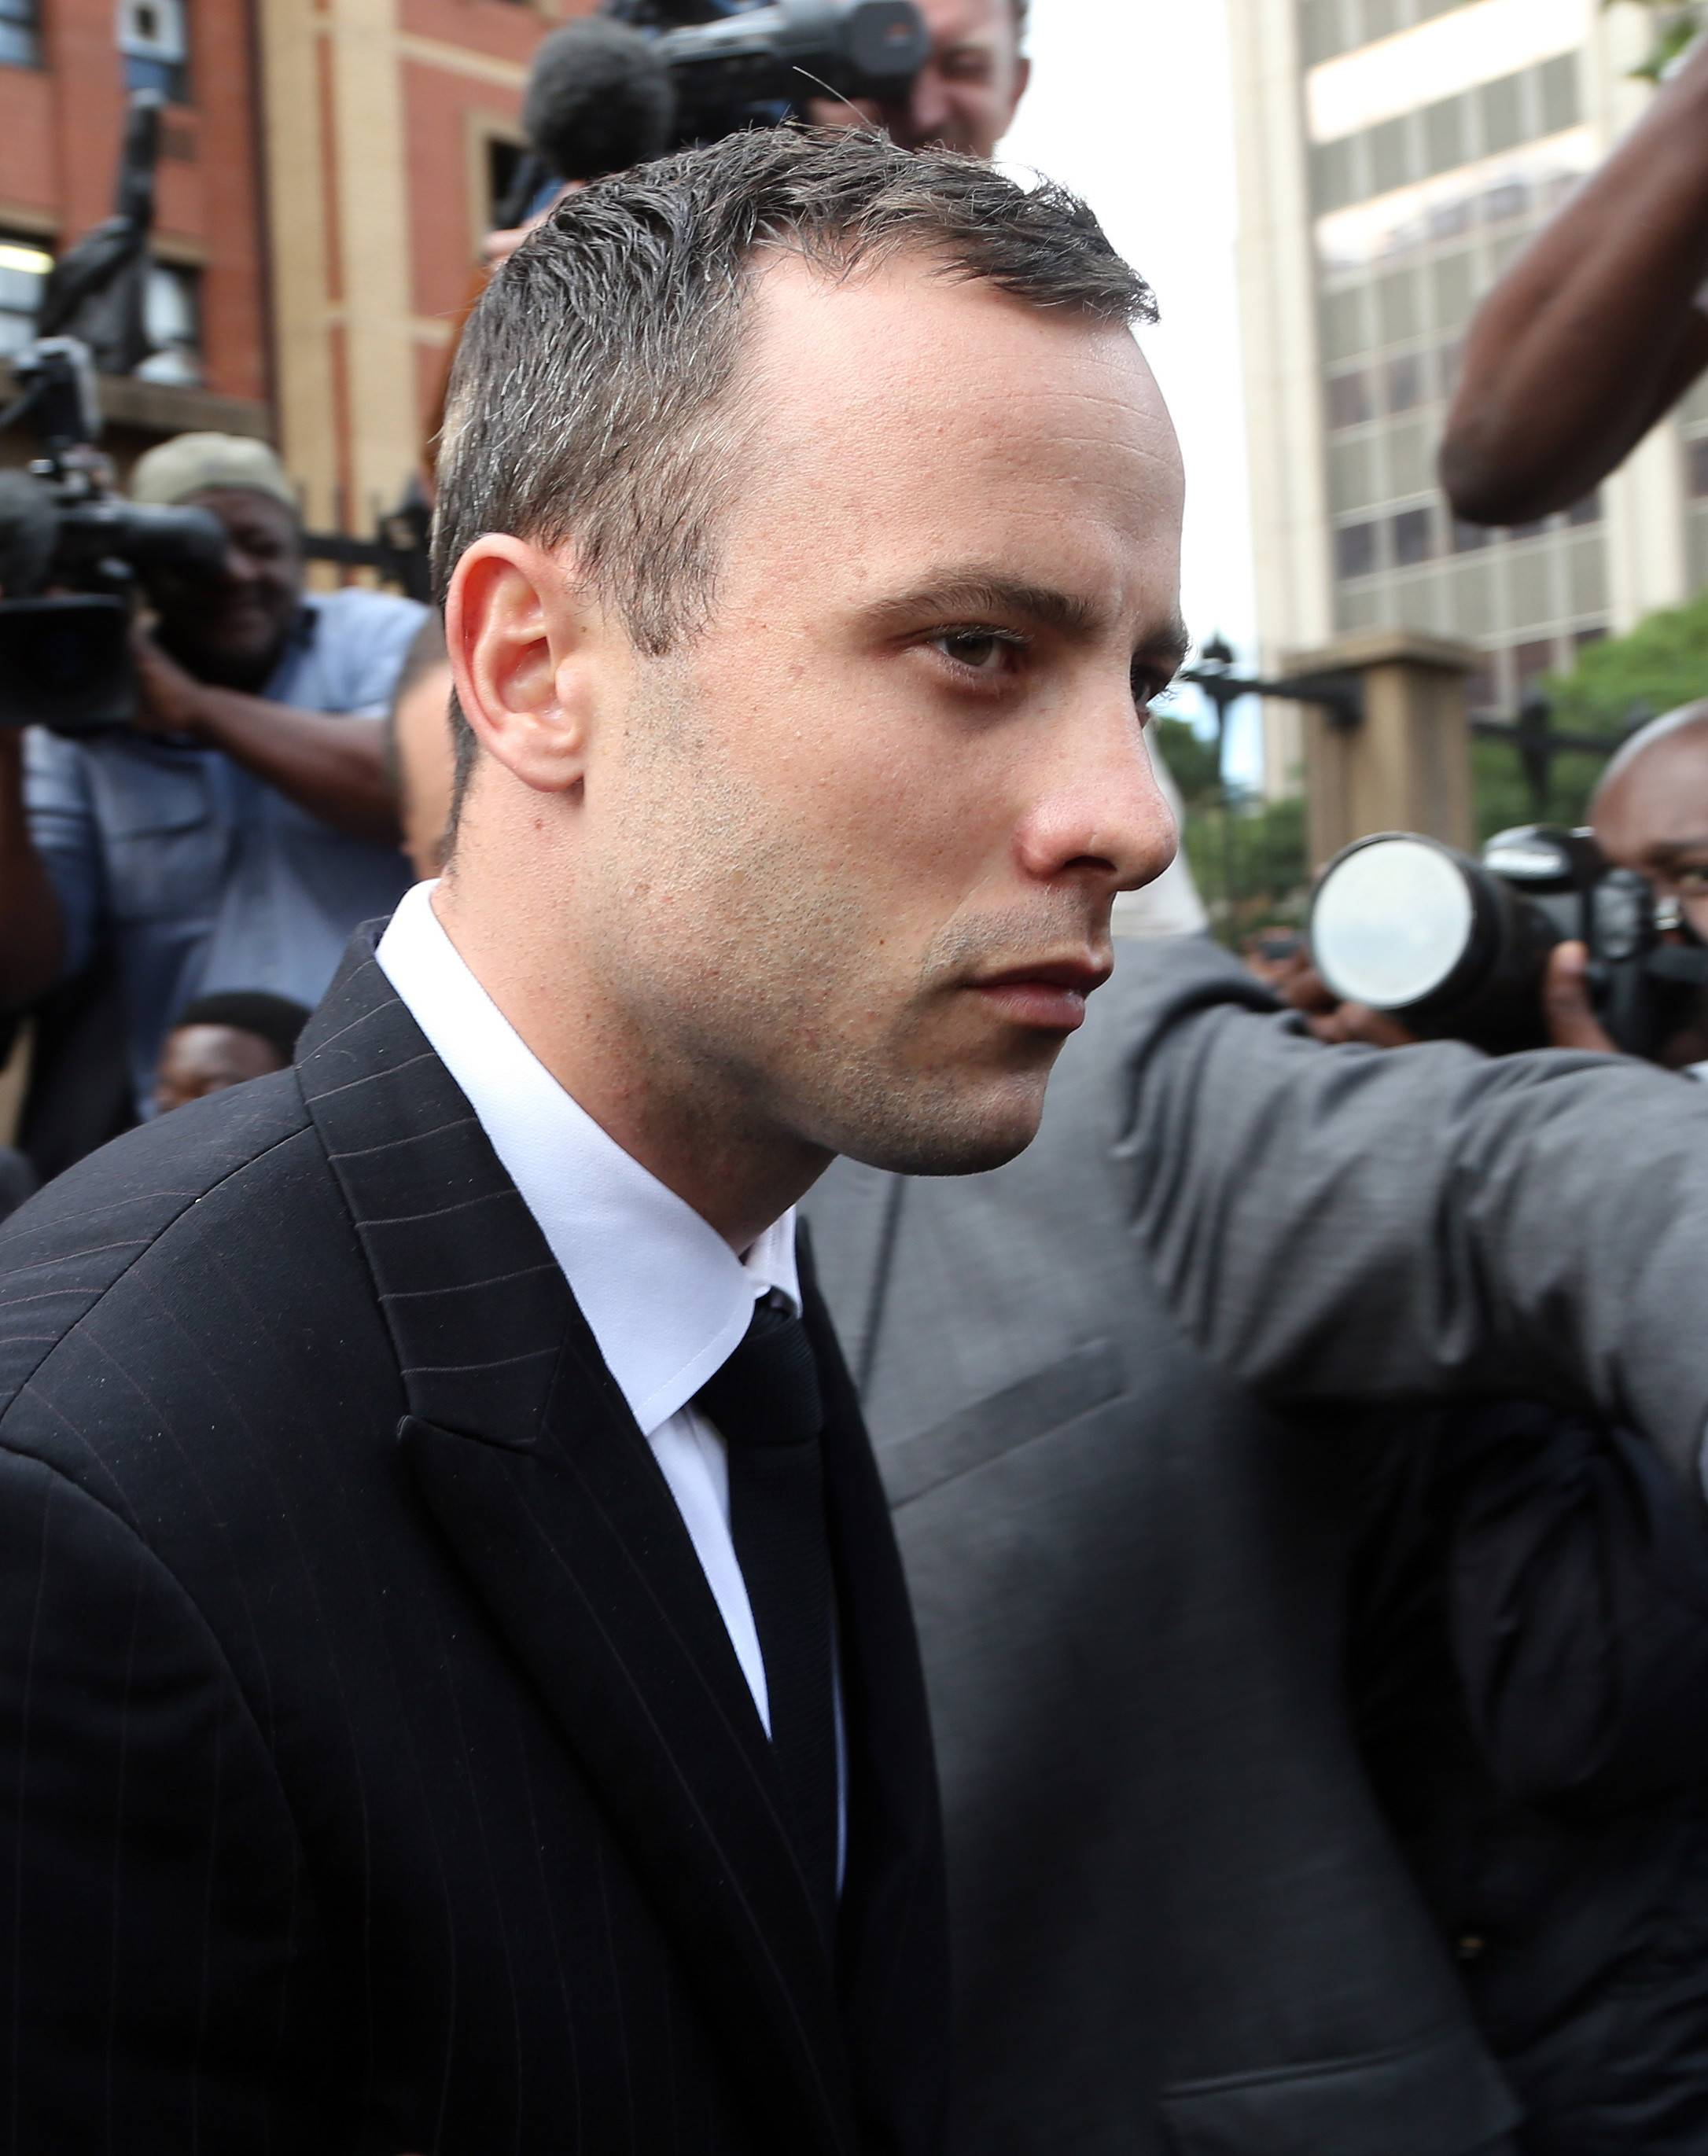 Oscar Pistorius leaves the high court in Pretoria, South Africa, Wednesday. He is charged with murder for shooting dead his girlfriend, Reeva Steenkamp, on Valentine's Day in 2013.